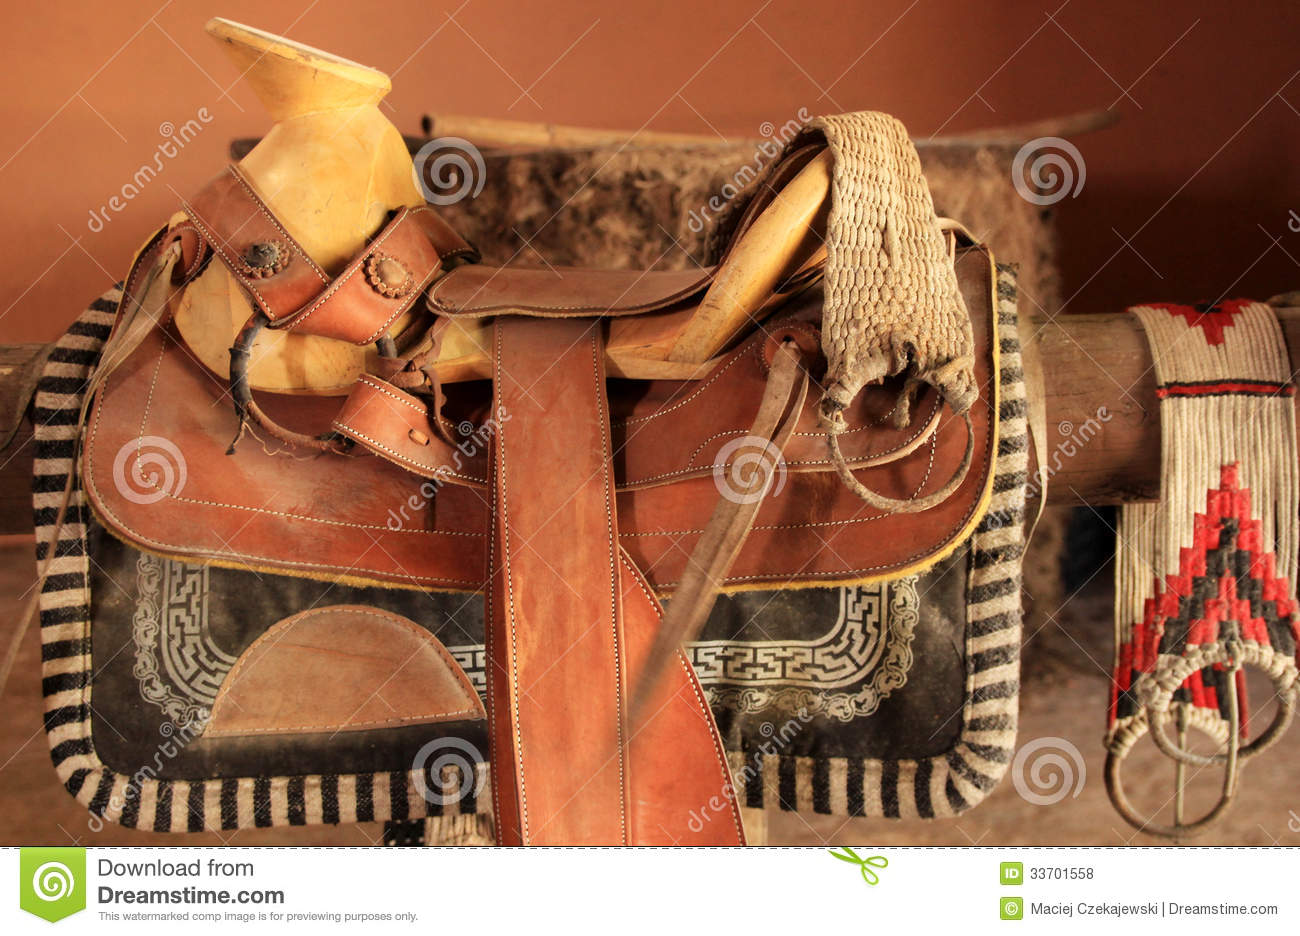 148 Mexican Horse Saddle Photos Free Royalty Free Stock Photos From Dreamstime